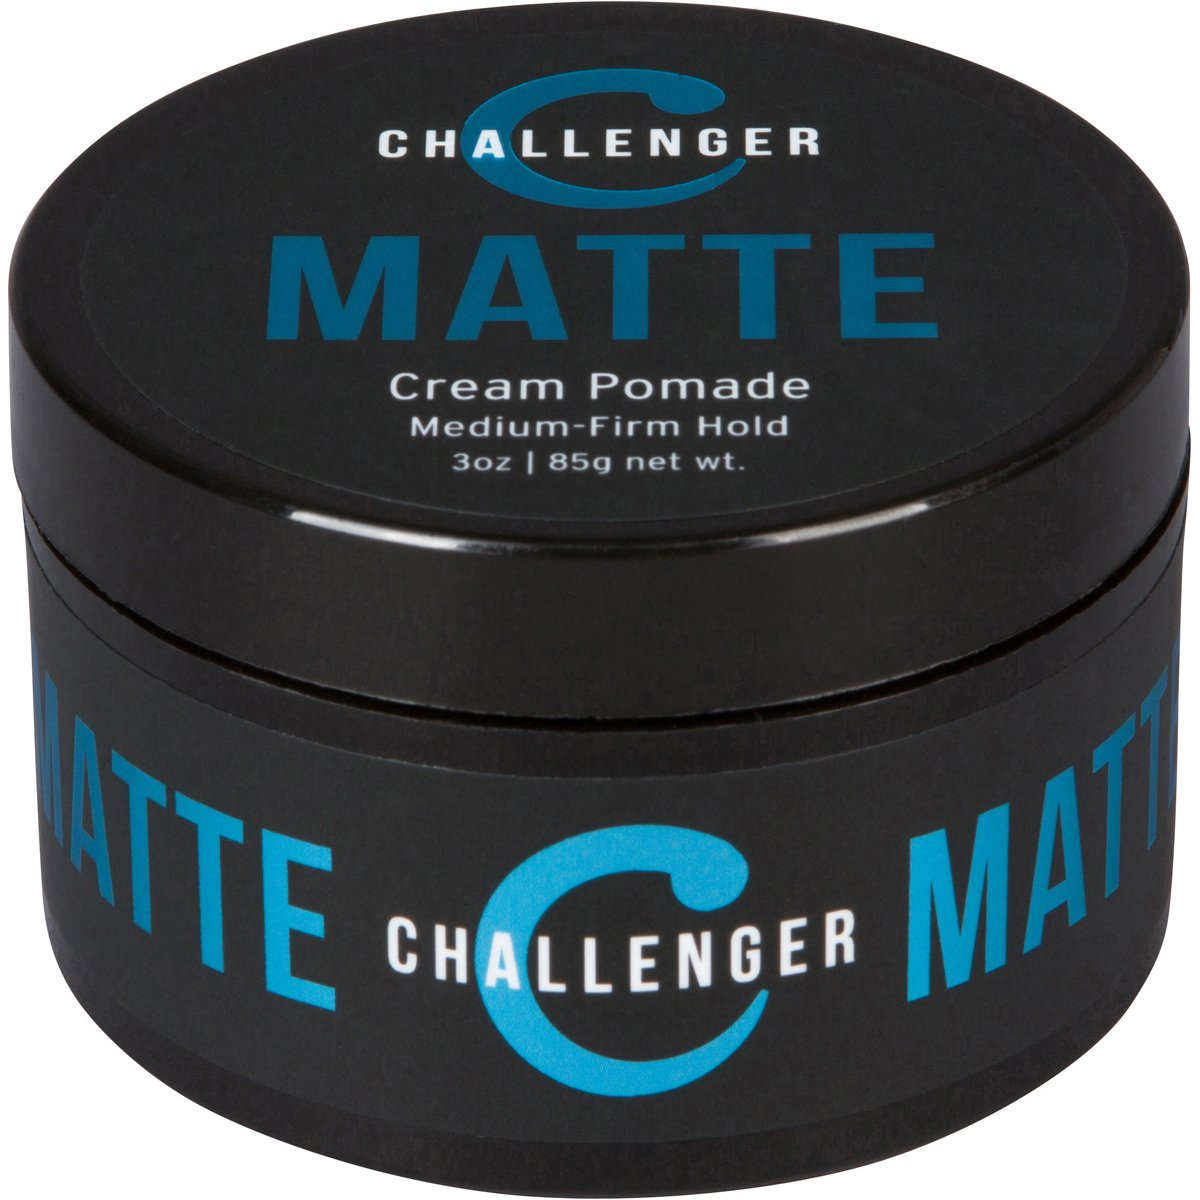 Matte Cream Pomade - Challenger 3oz - Medium Firm Hold - Water Based, Clean & Subtle Scent, Travel Friendly. Men's Hair Wax, Fiber, Clay, Paste, Styling Cream All In One by Challenger (Image #9)